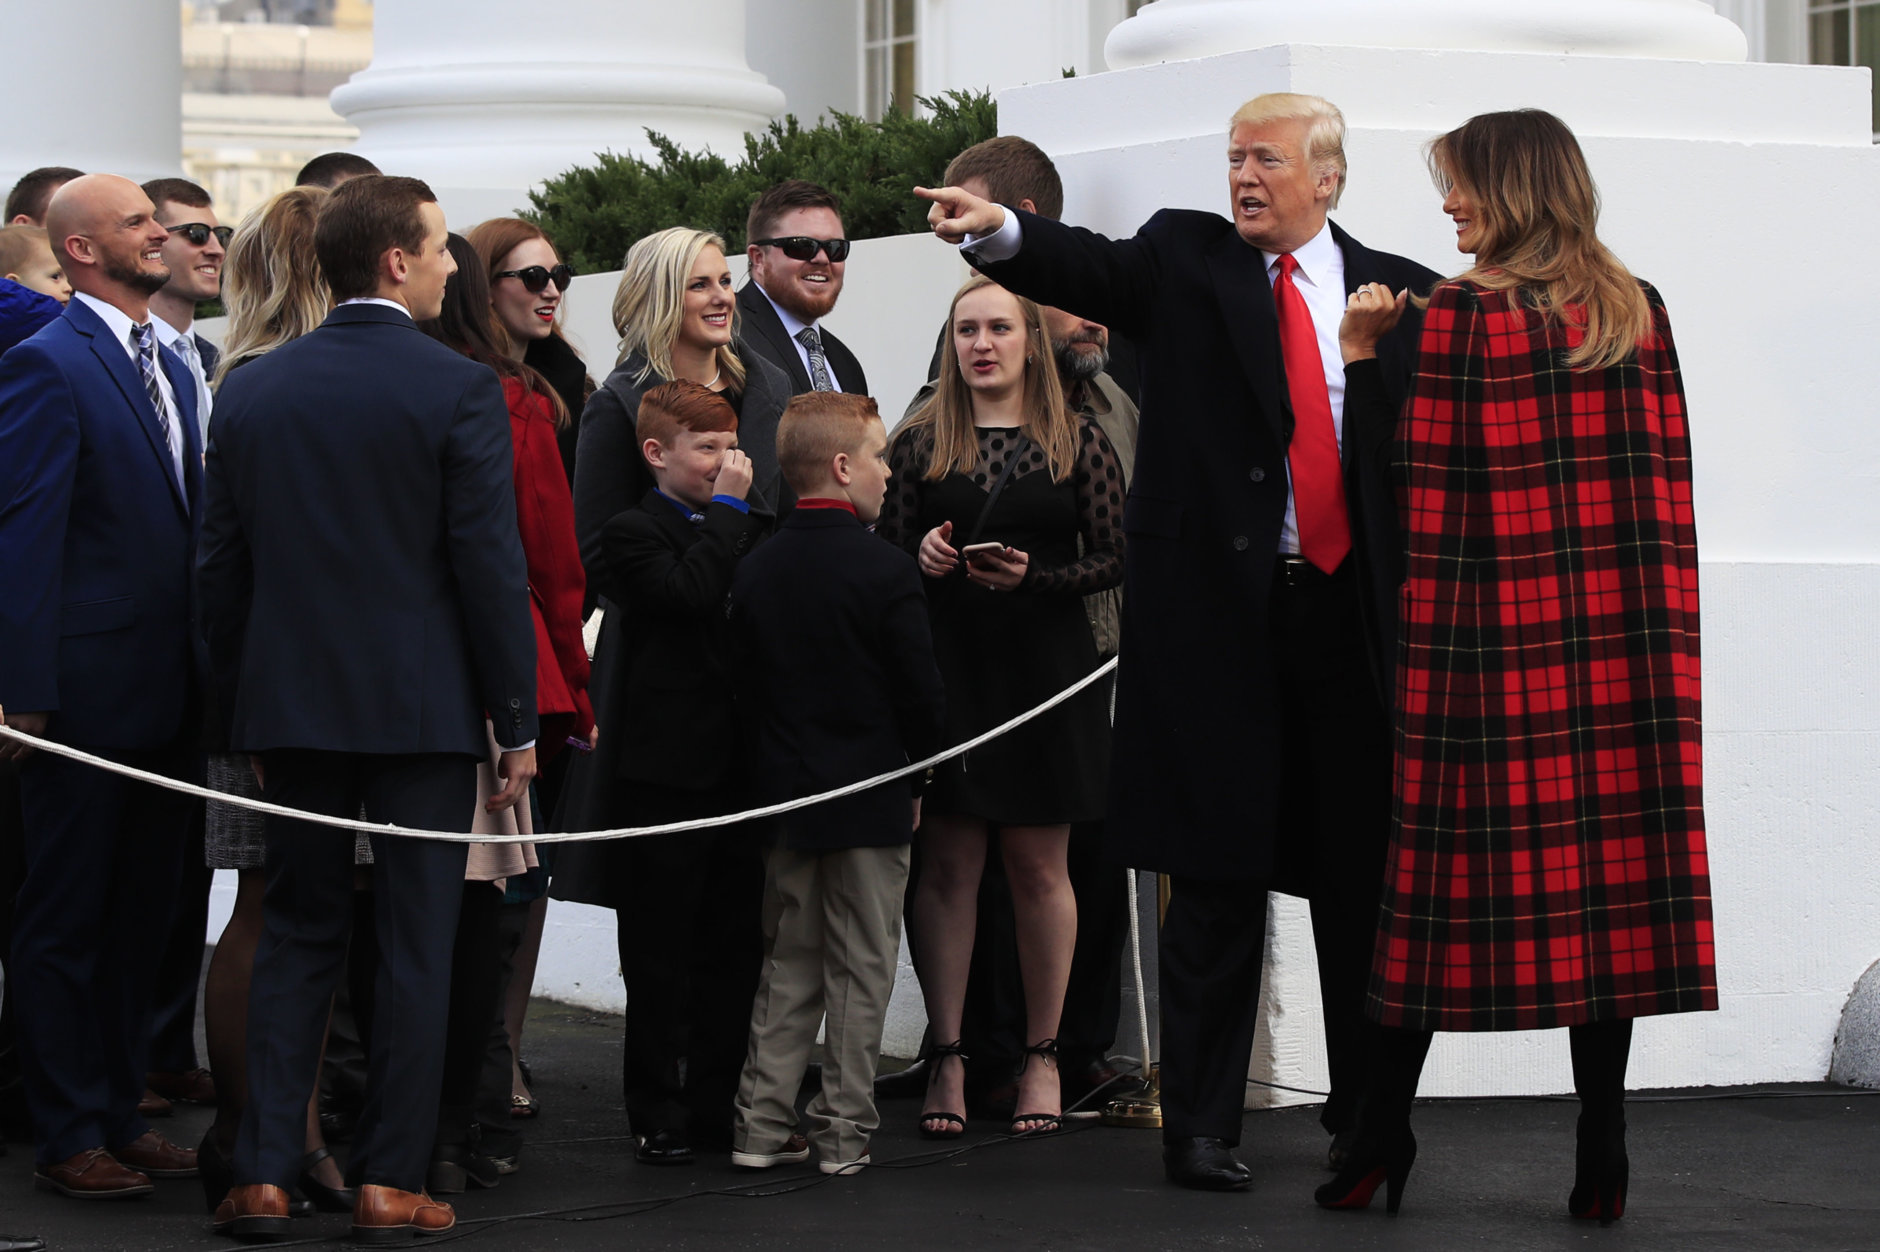 President Donald Trump and first lady Melania Trump wave to invited guests during a ceremony to receive the White House Christmas Tree, presented by tree grower Larry Smith and the Smith family at the North Portico of the White House, in Washington, Monday, Nov. 19, 2018. The North Carolina-grown 19 1/2-foot-tall Fraser Fir will be displayed in the Blue Room of the White House. (AP Photo/Manuel Balce Ceneta)